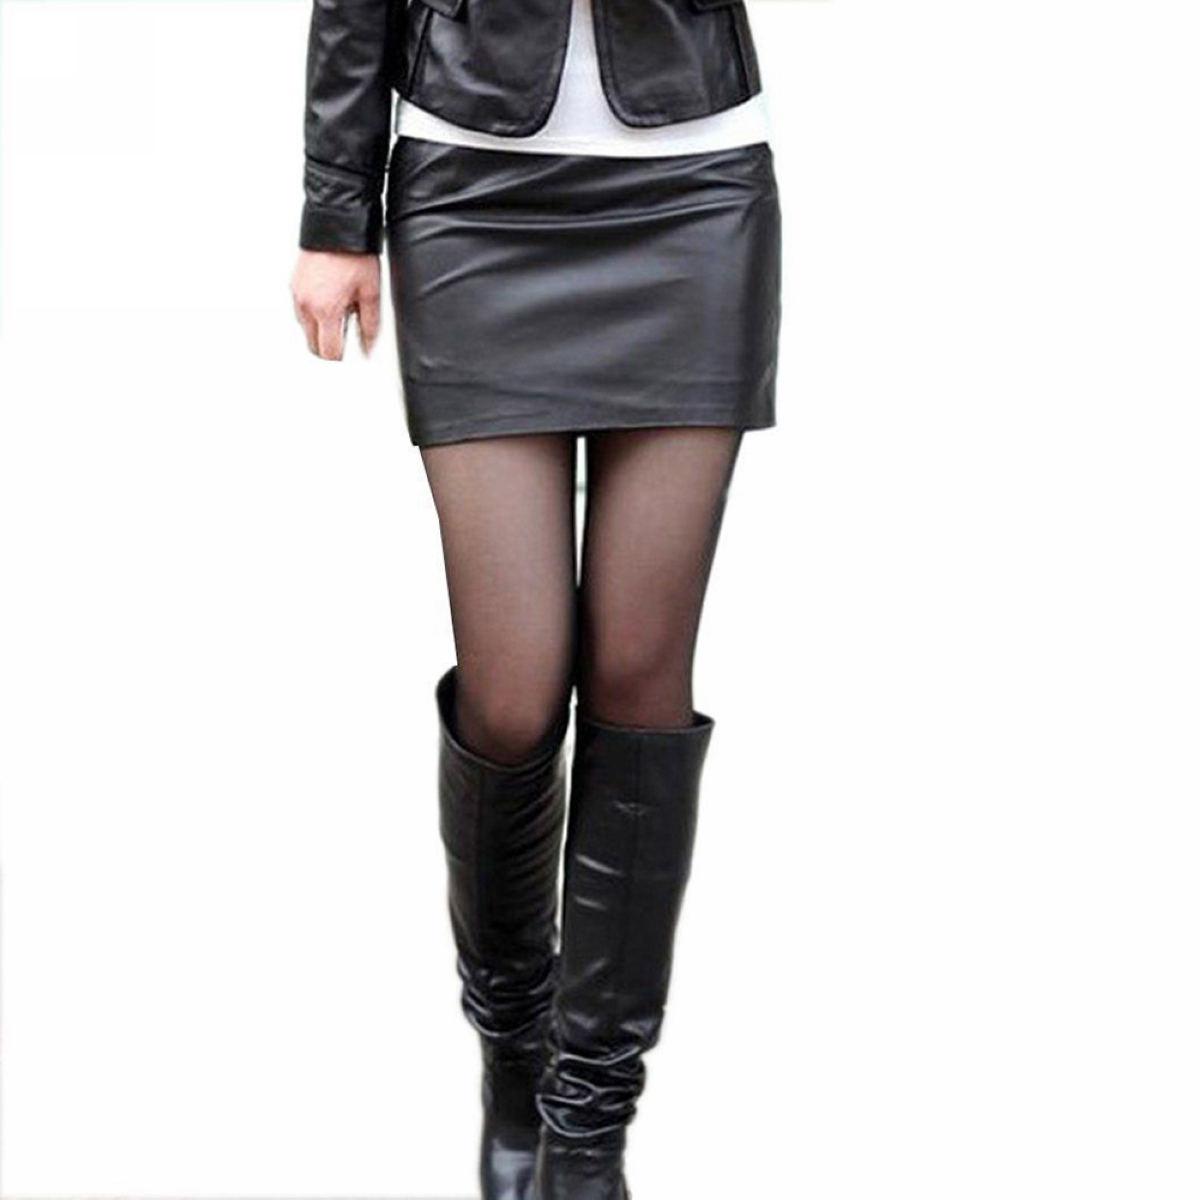 Skirt Womens Sexy Soft PU Leather High Waist Slim Pencil Bodycon Mini Skirt Lady Tight Stretch Korean OL Skirts Jupe Femme